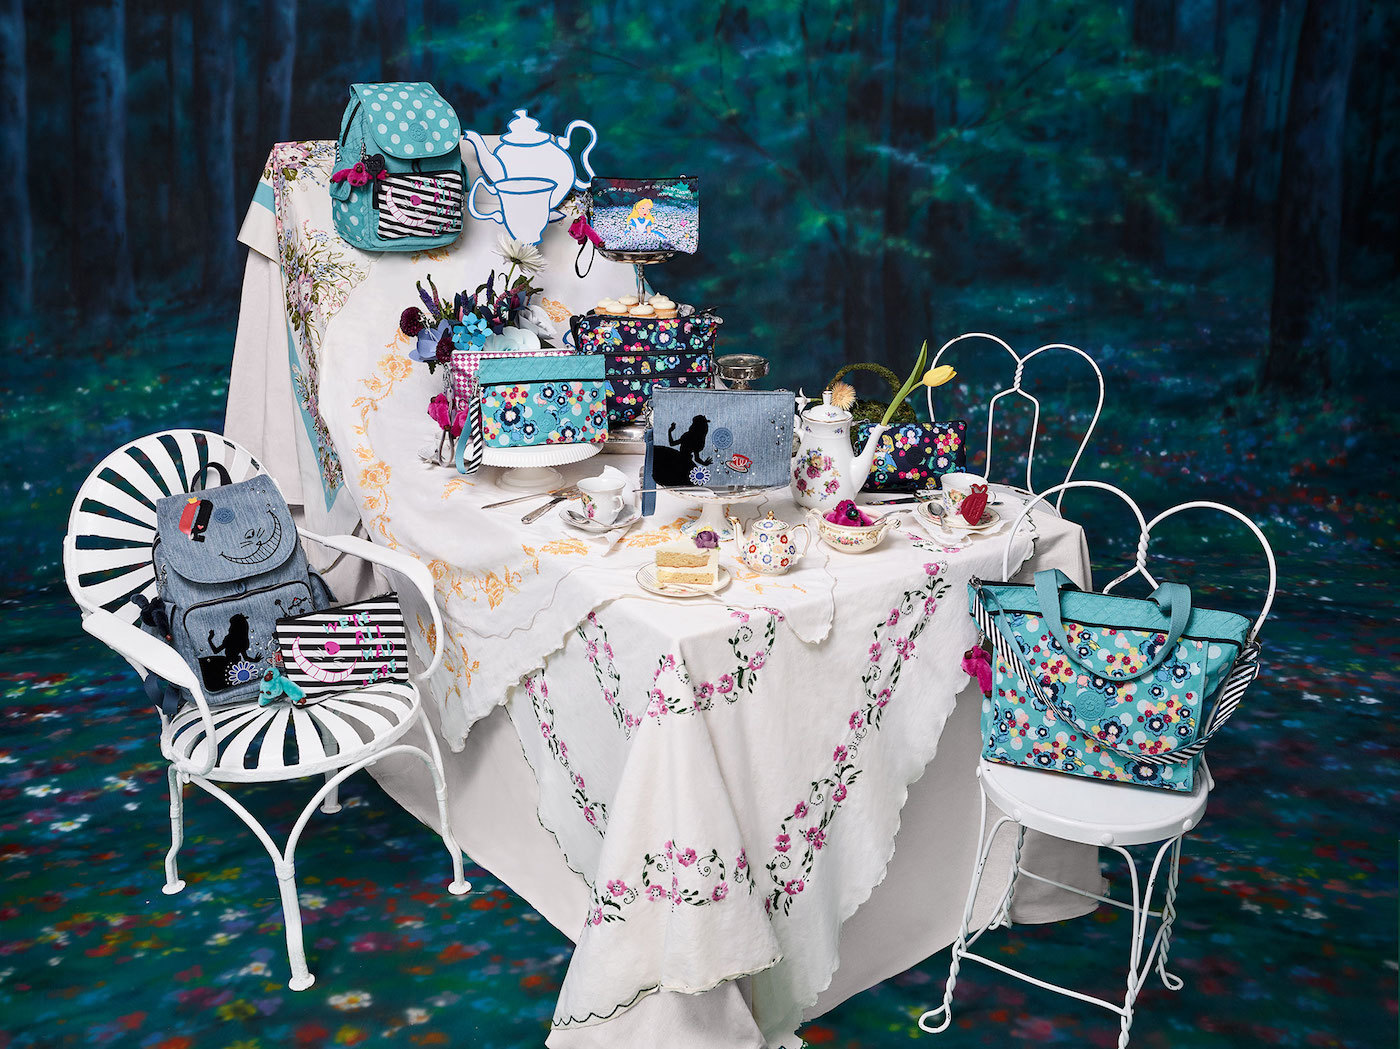 Fashion Items from Kipling's Alice in Wonderland Collection